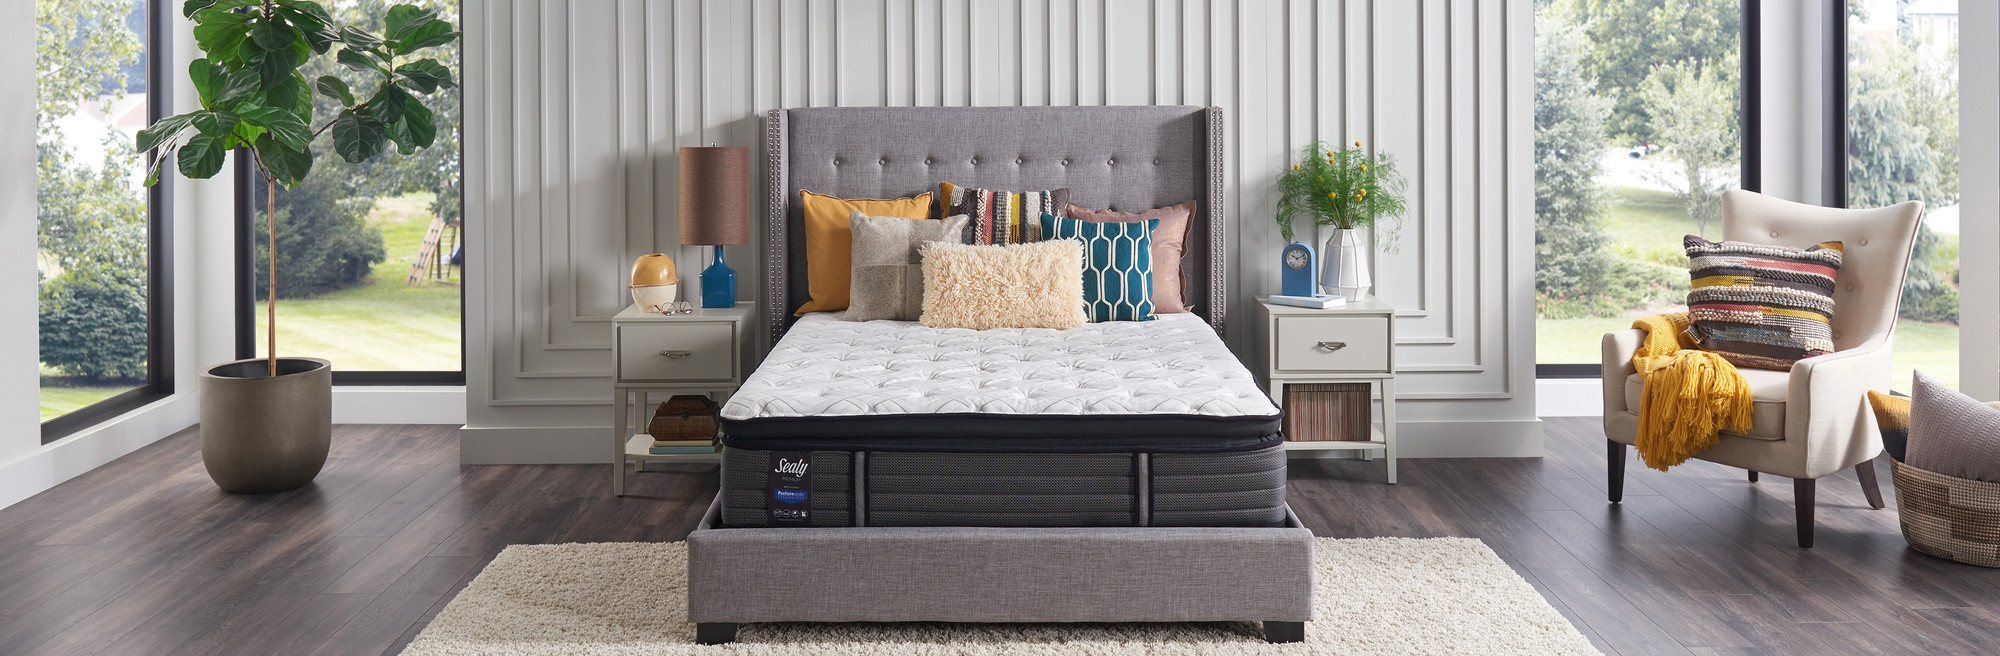 Sealy Response Premium Mattress in a stylish bedroom